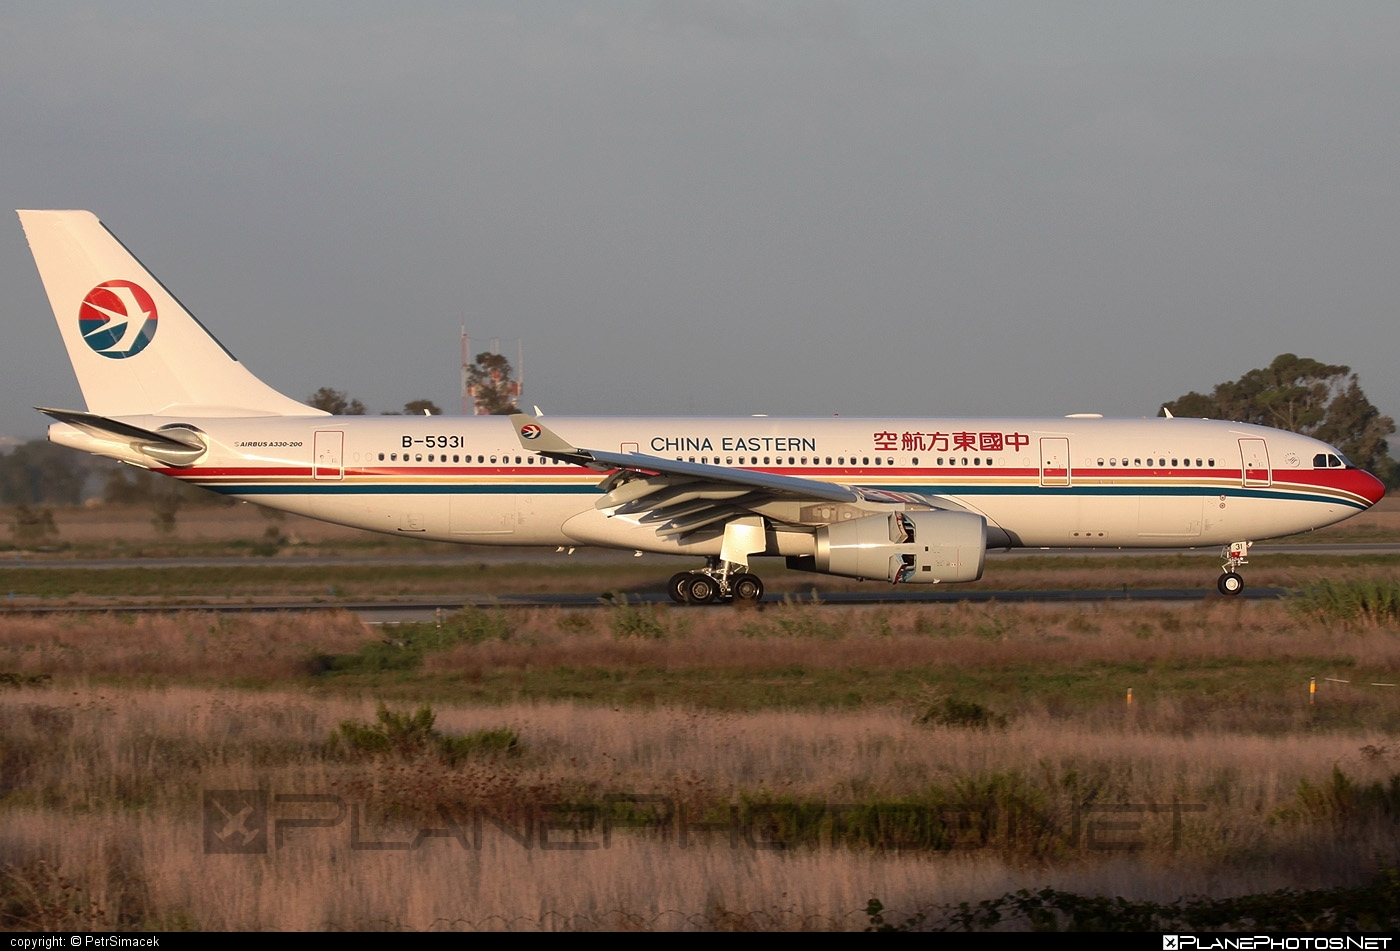 Airbus A330-243 - B-5931 operated by China Eastern Airlines #a330 #a330family #airbus #airbus330 #chinaeastern #chinaeasternairlines